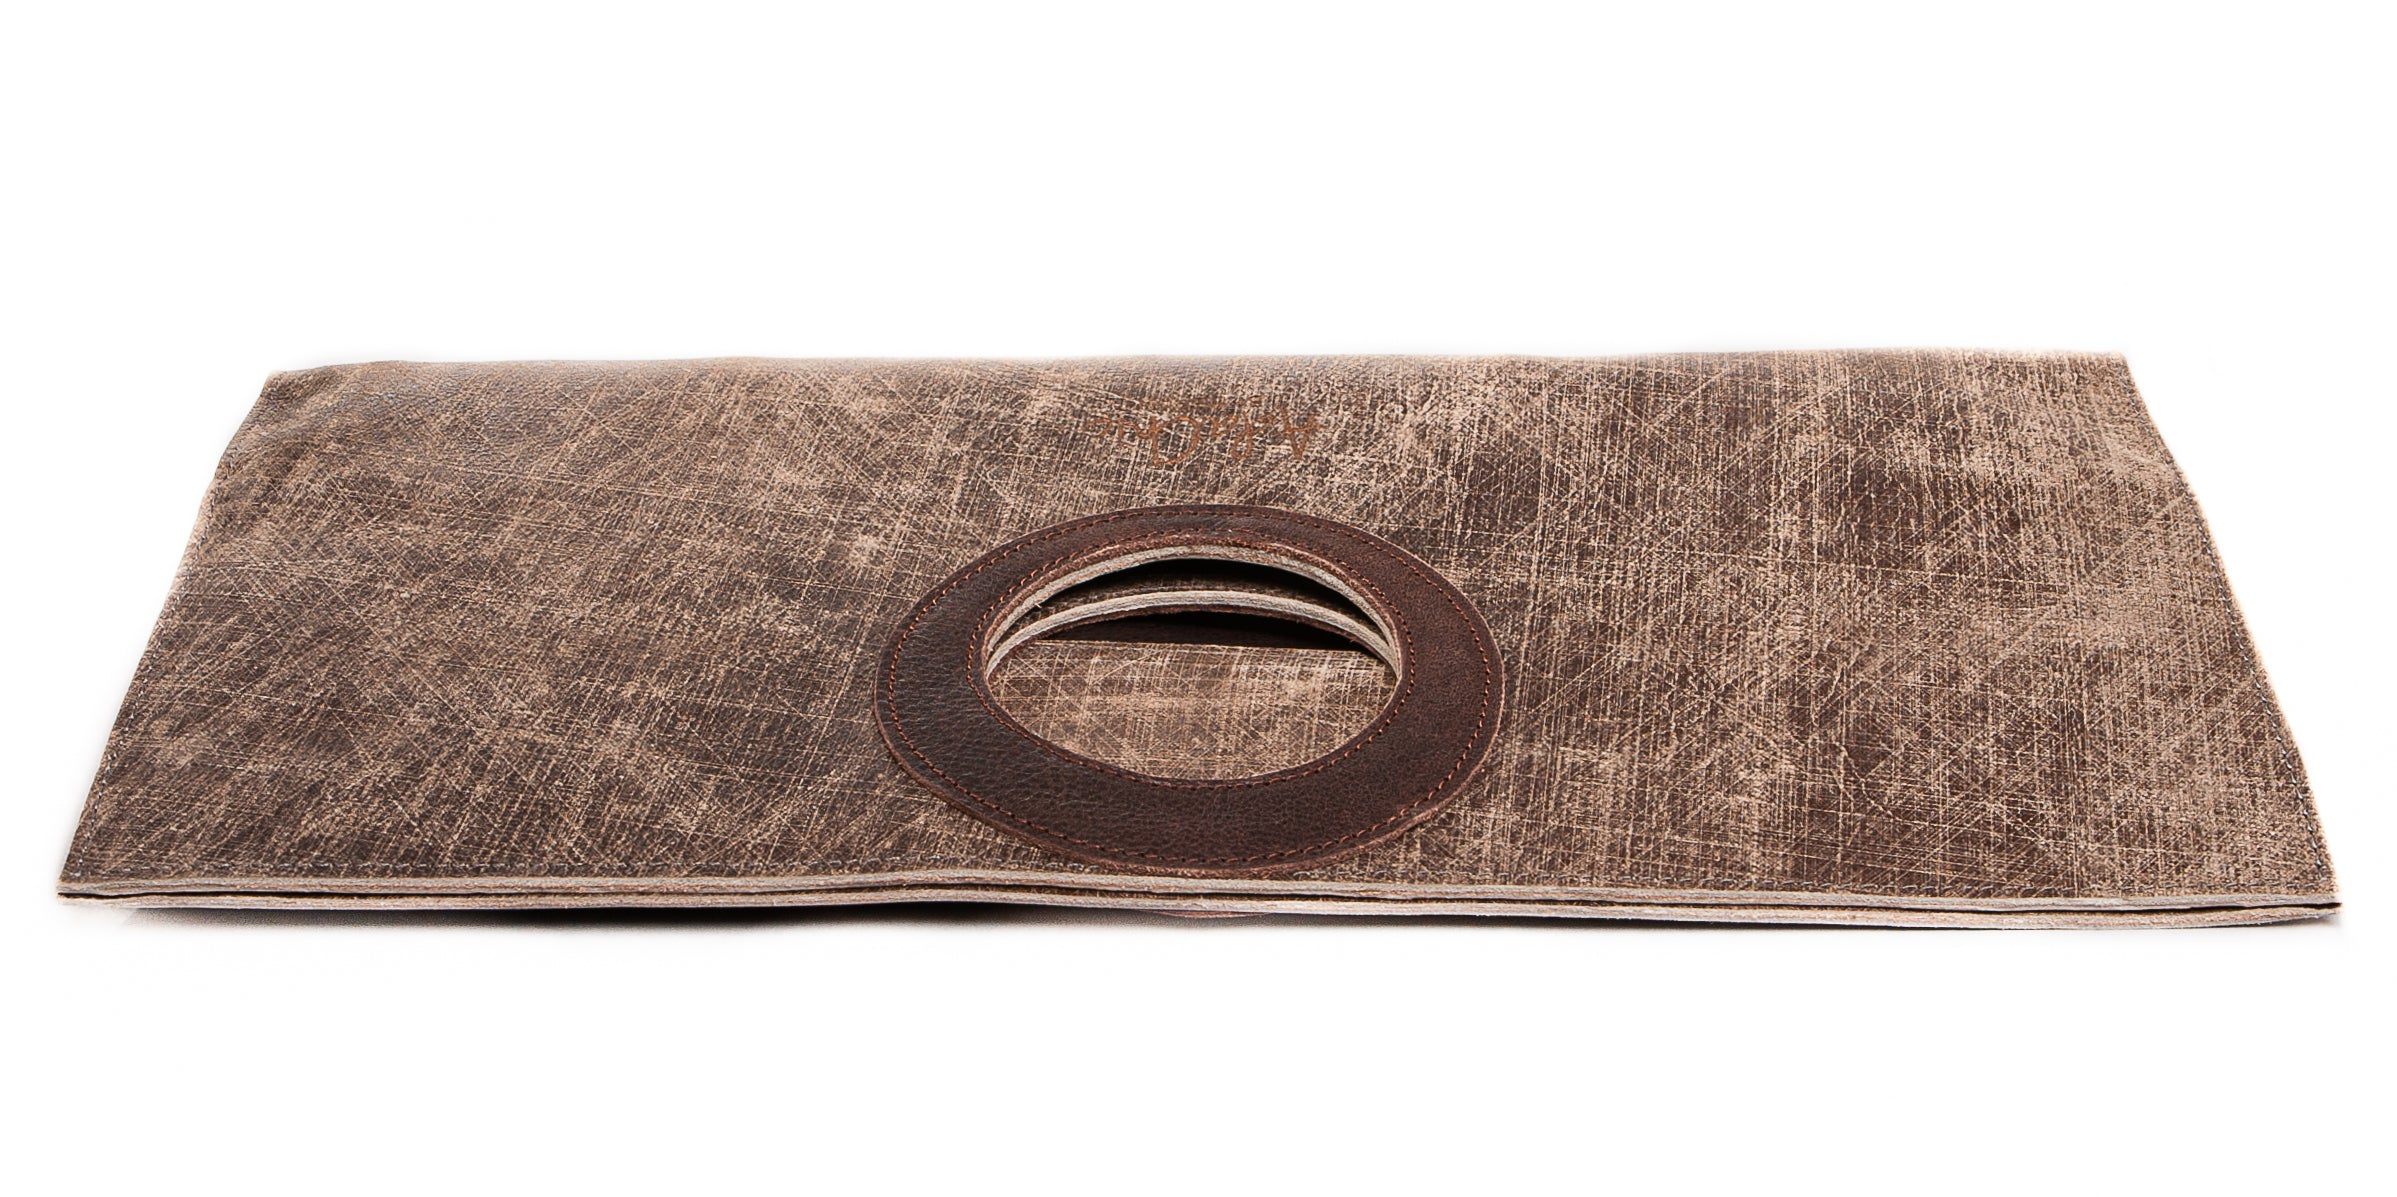 Gifti Fold Over Leather Clutch/Handbag with Top Handle (Grey & Chocolate)